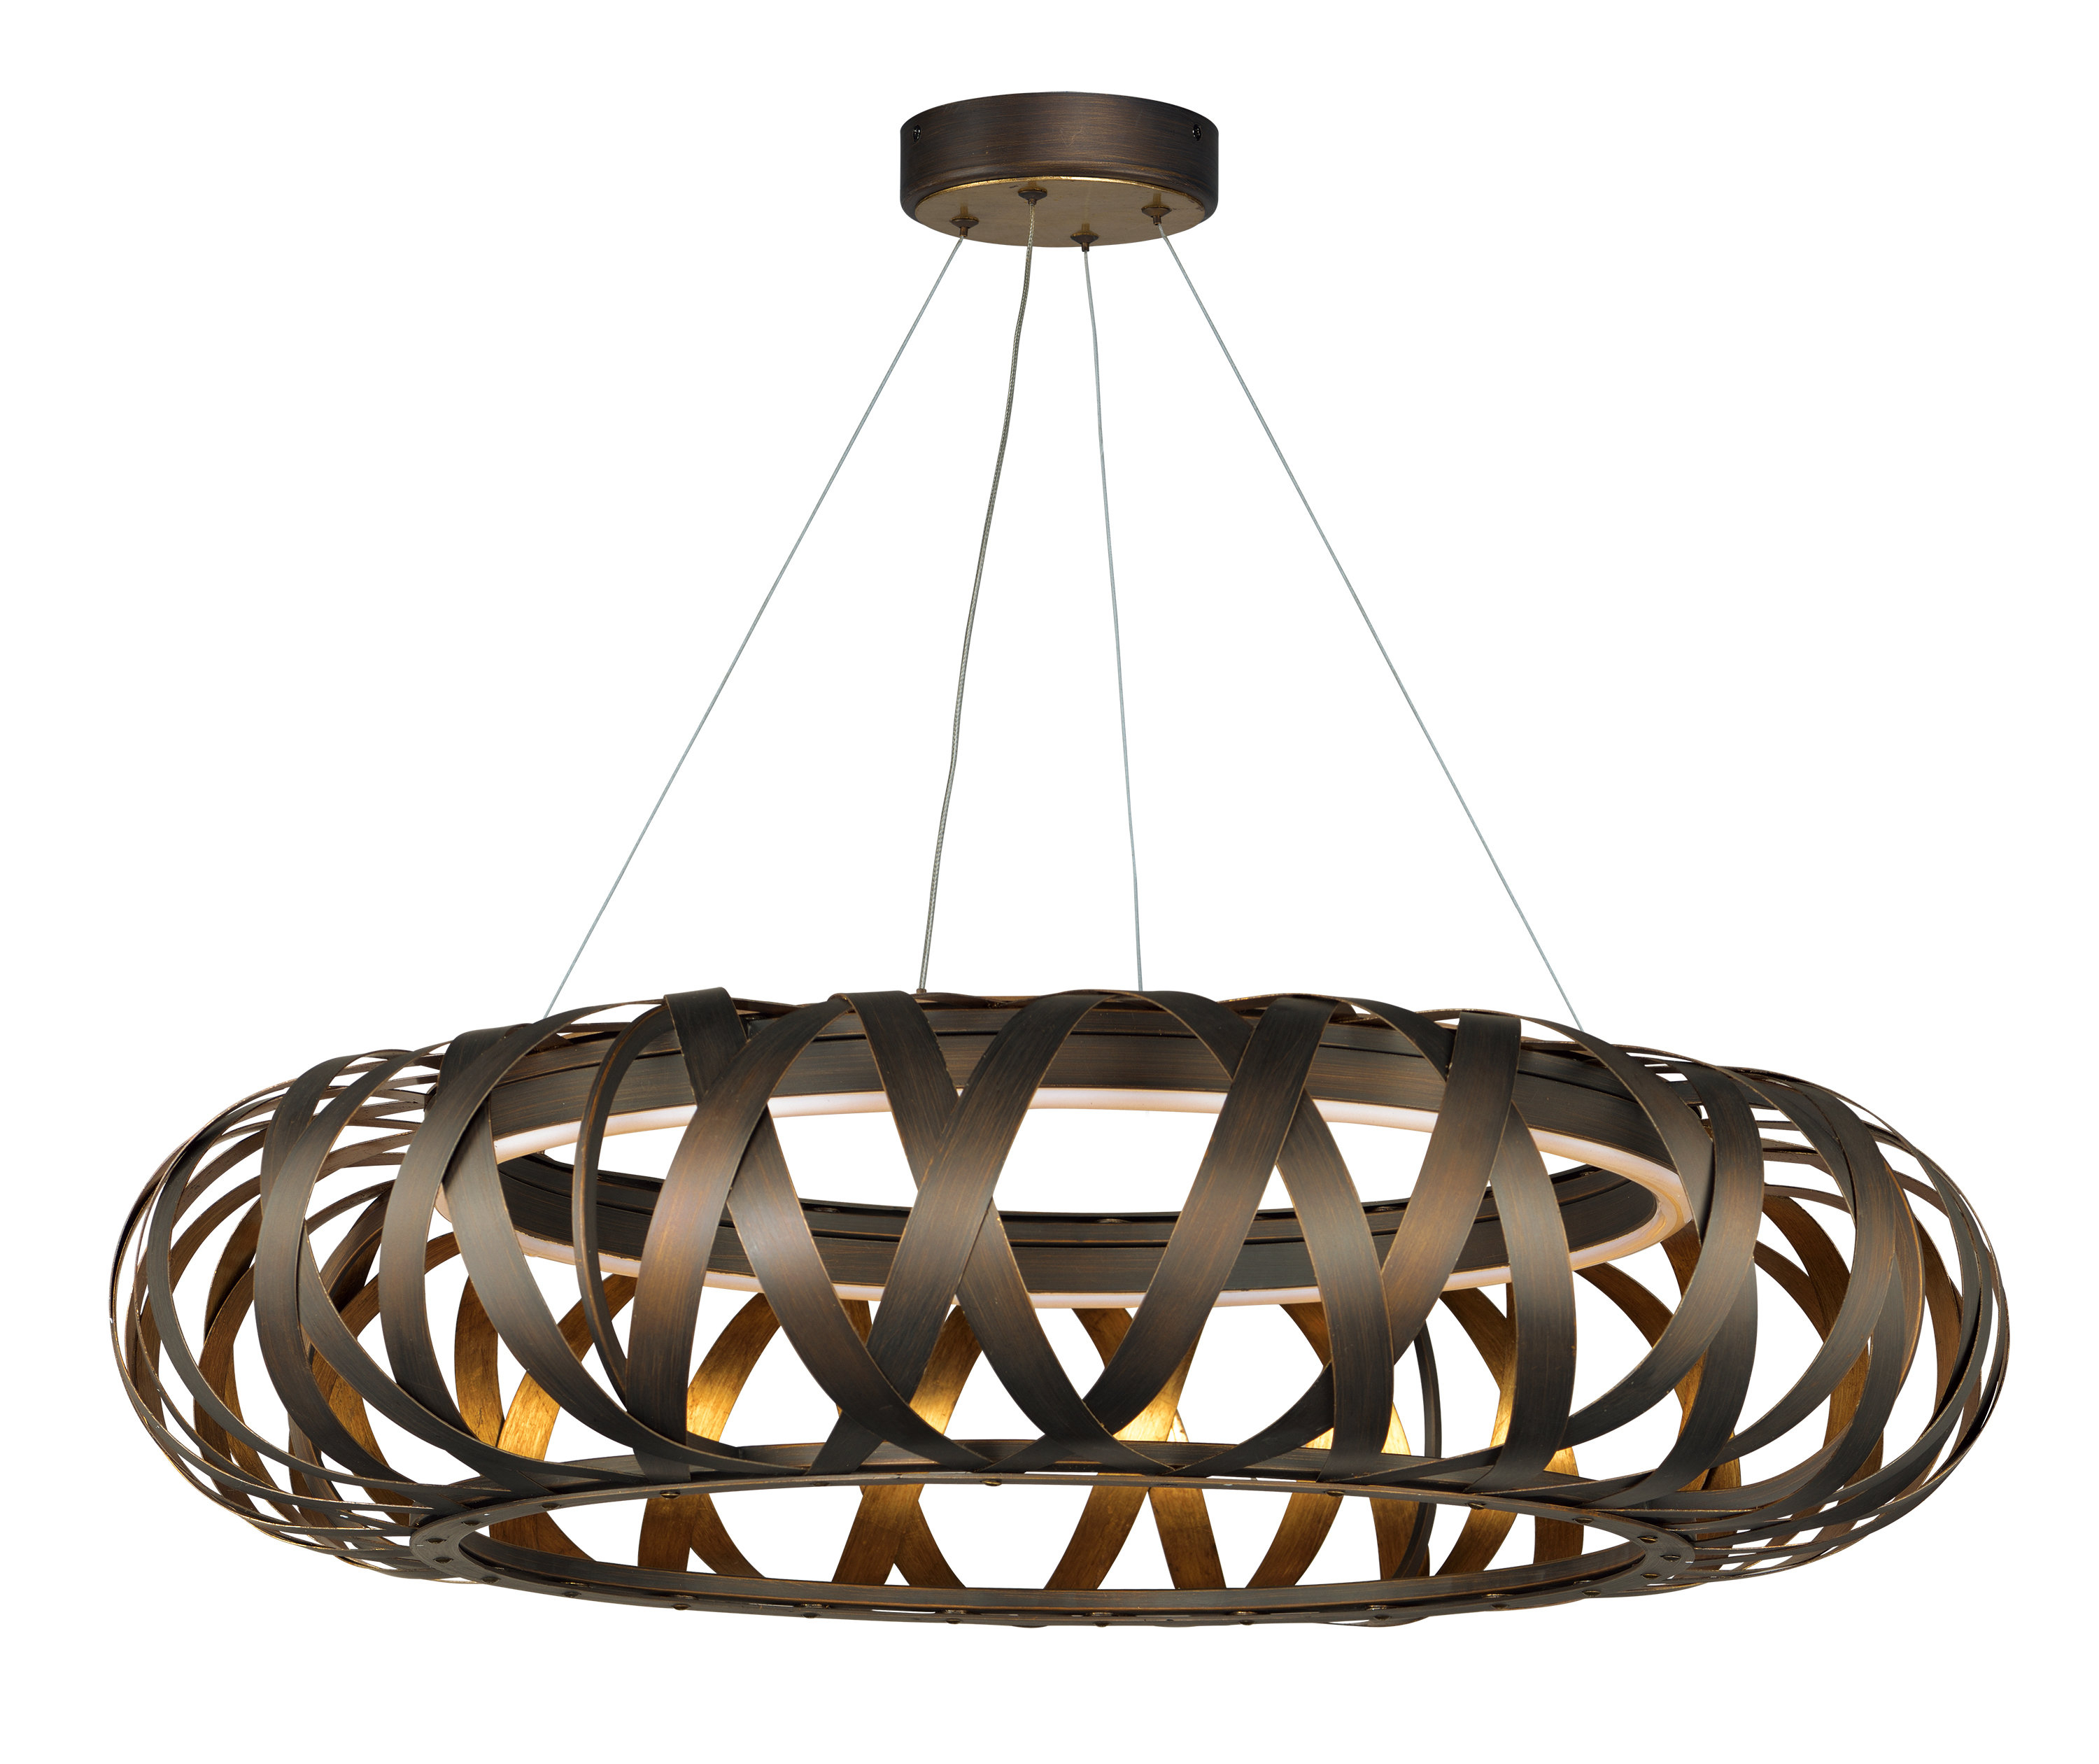 Latest Melora 1 Light Single Geometric Pendants Inside Deskins Entry 1 Light Led Geometric Pendant (View 10 of 25)